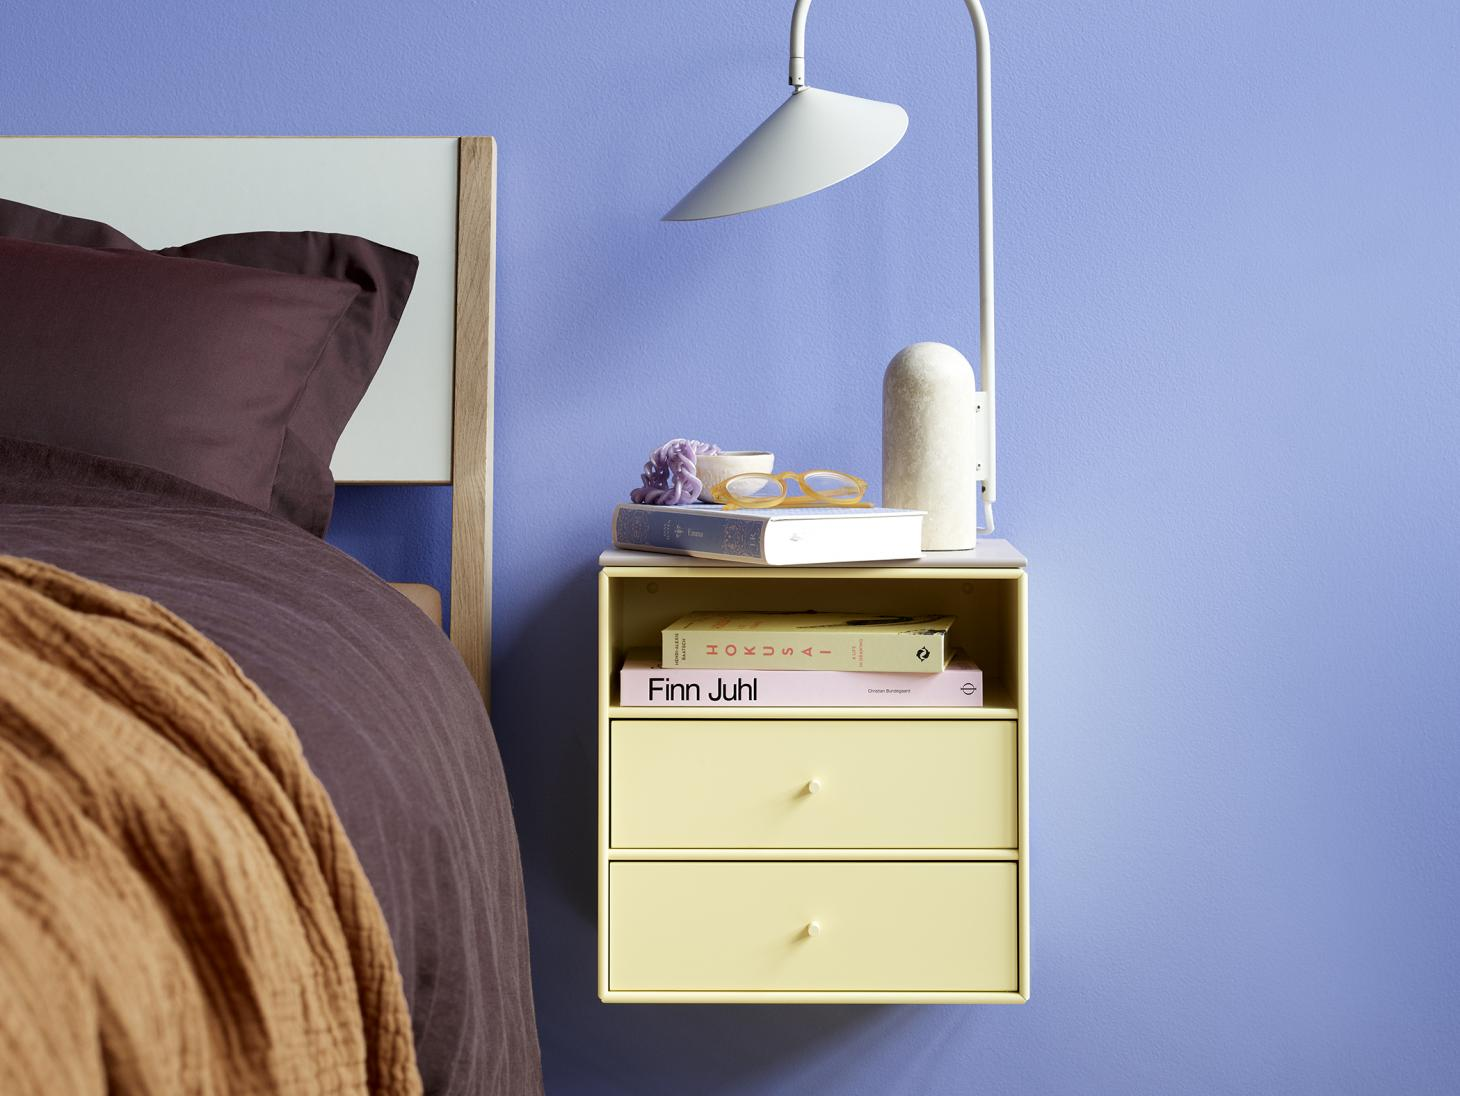 Yellow bedside table from the Montana Mini collection installed on blue wall in a bedroom